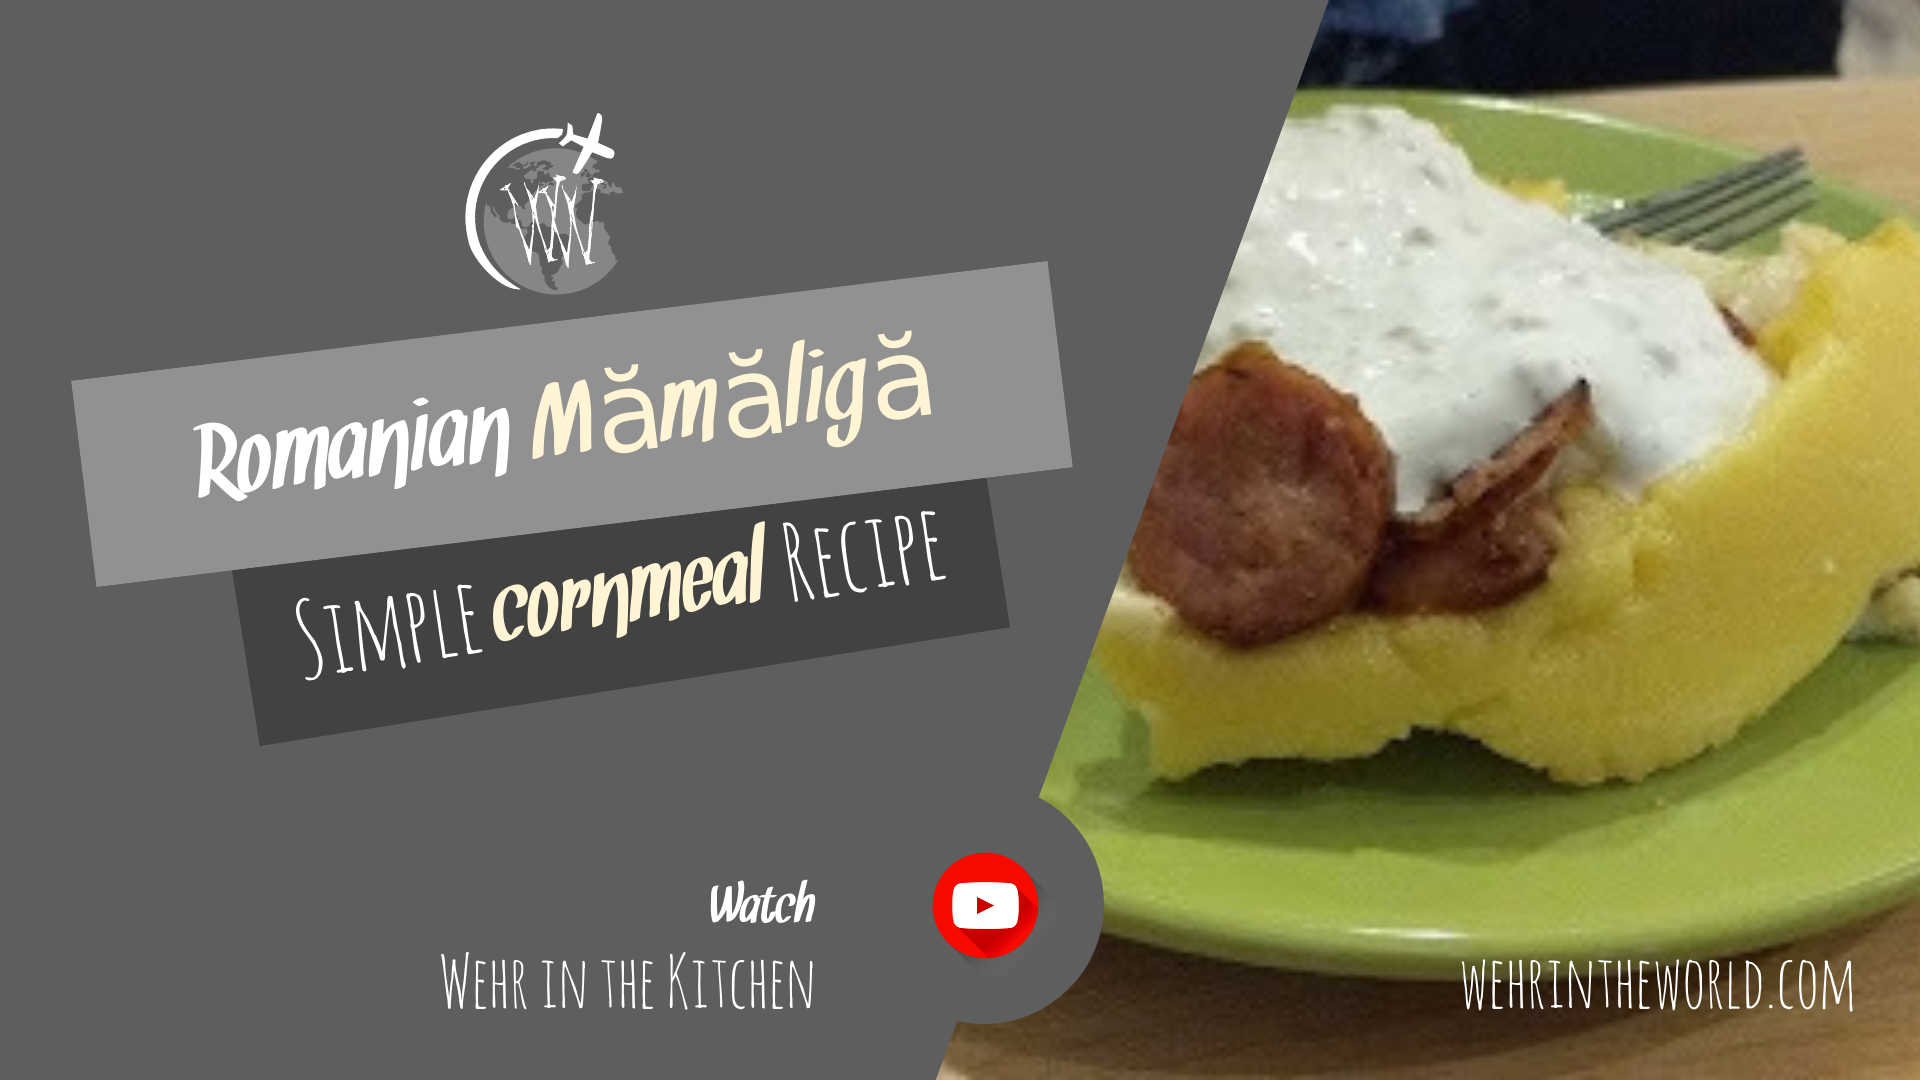 Youtube Episode #3 - Cooking Anca's Mămăligă